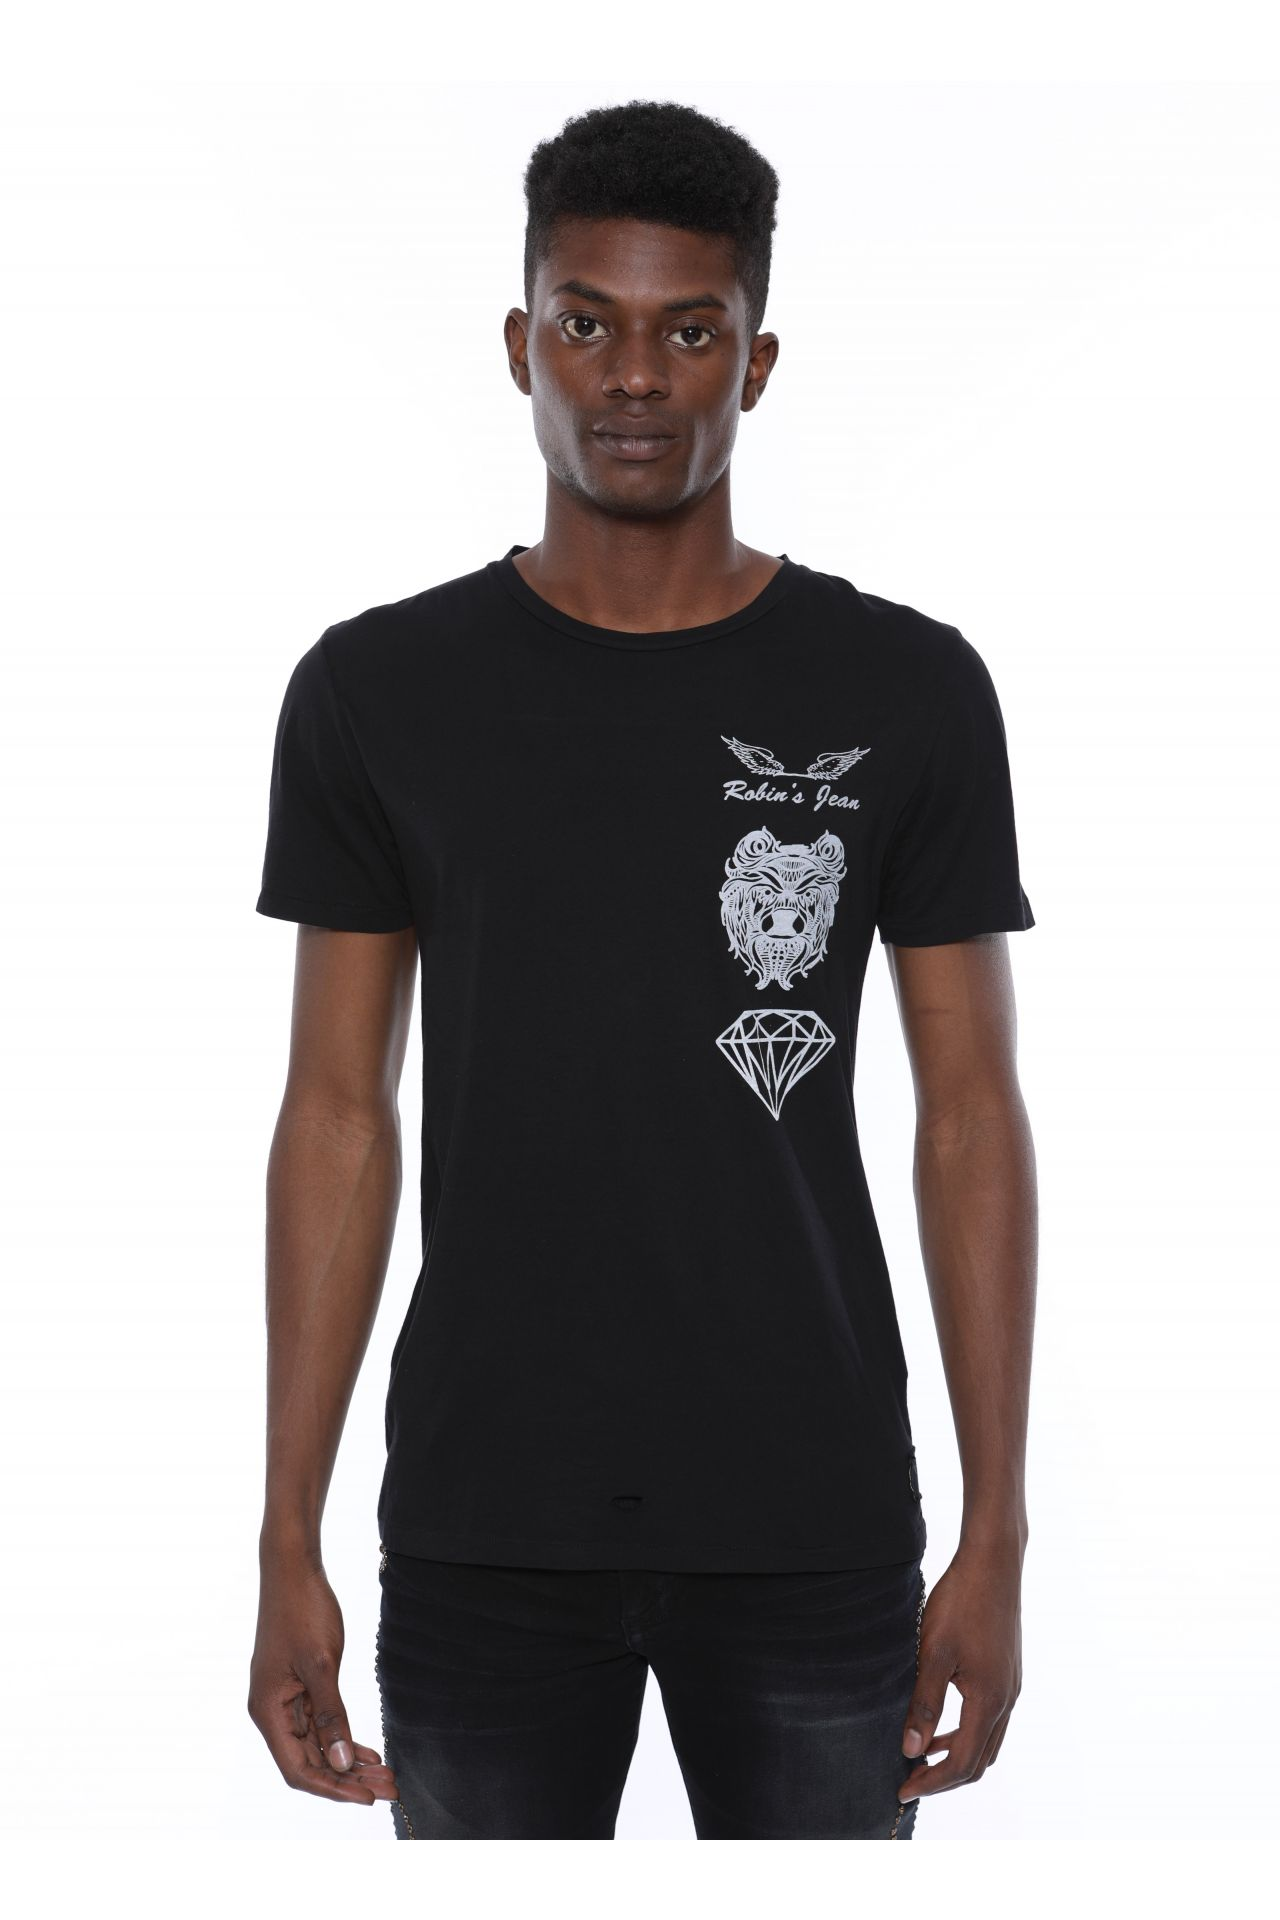 BLACK BEAR TEE IN BLACK